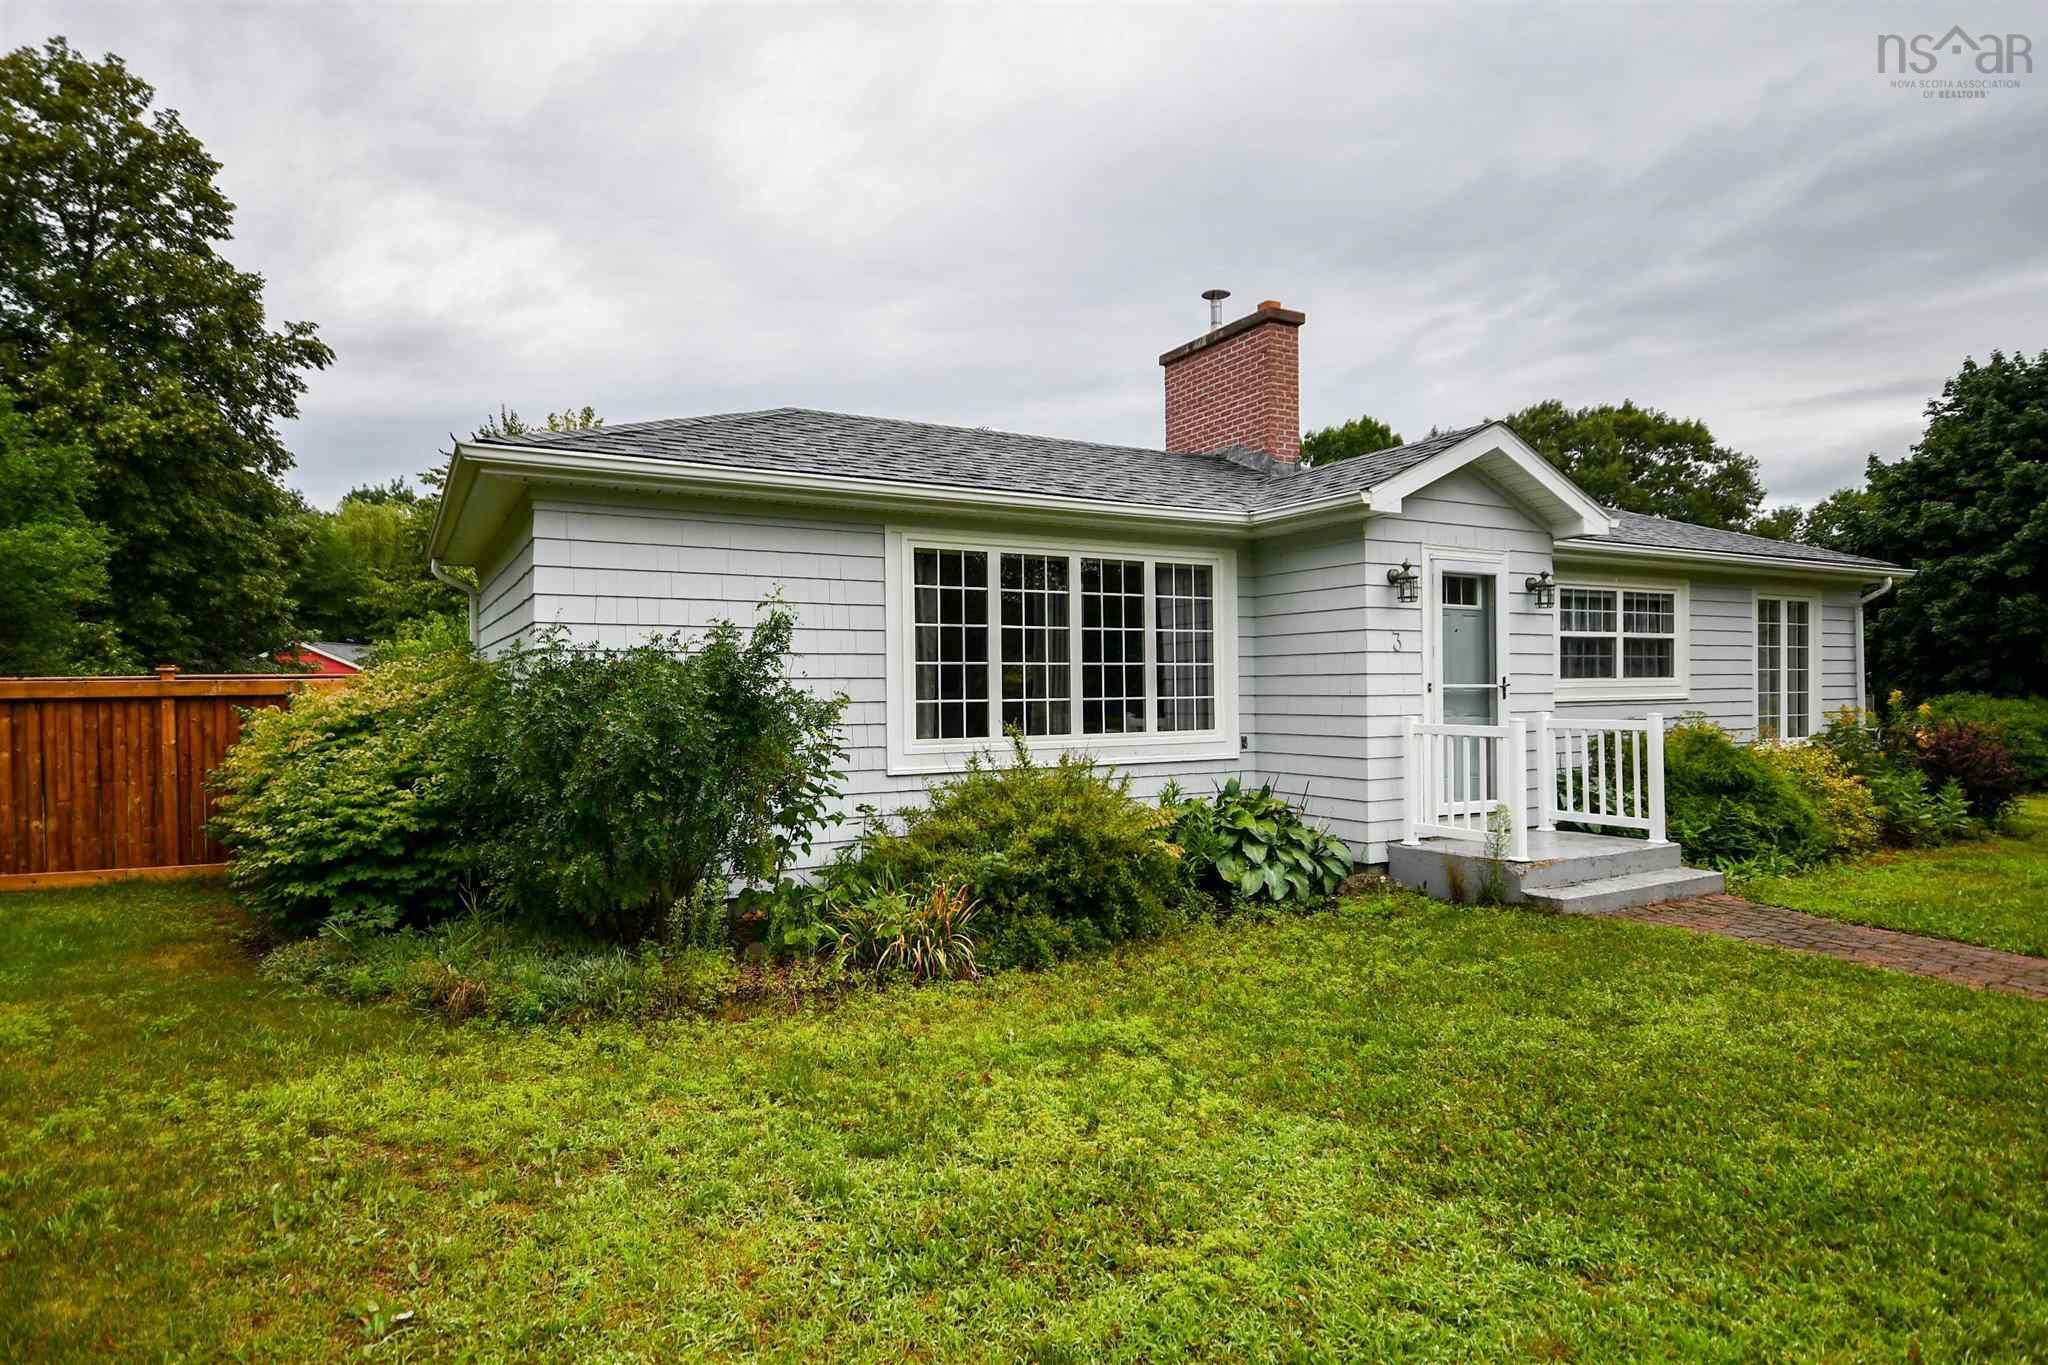 Main Photo: 3 Fielding Avenue in Kentville: 404-Kings County Residential for sale (Annapolis Valley)  : MLS®# 202119738